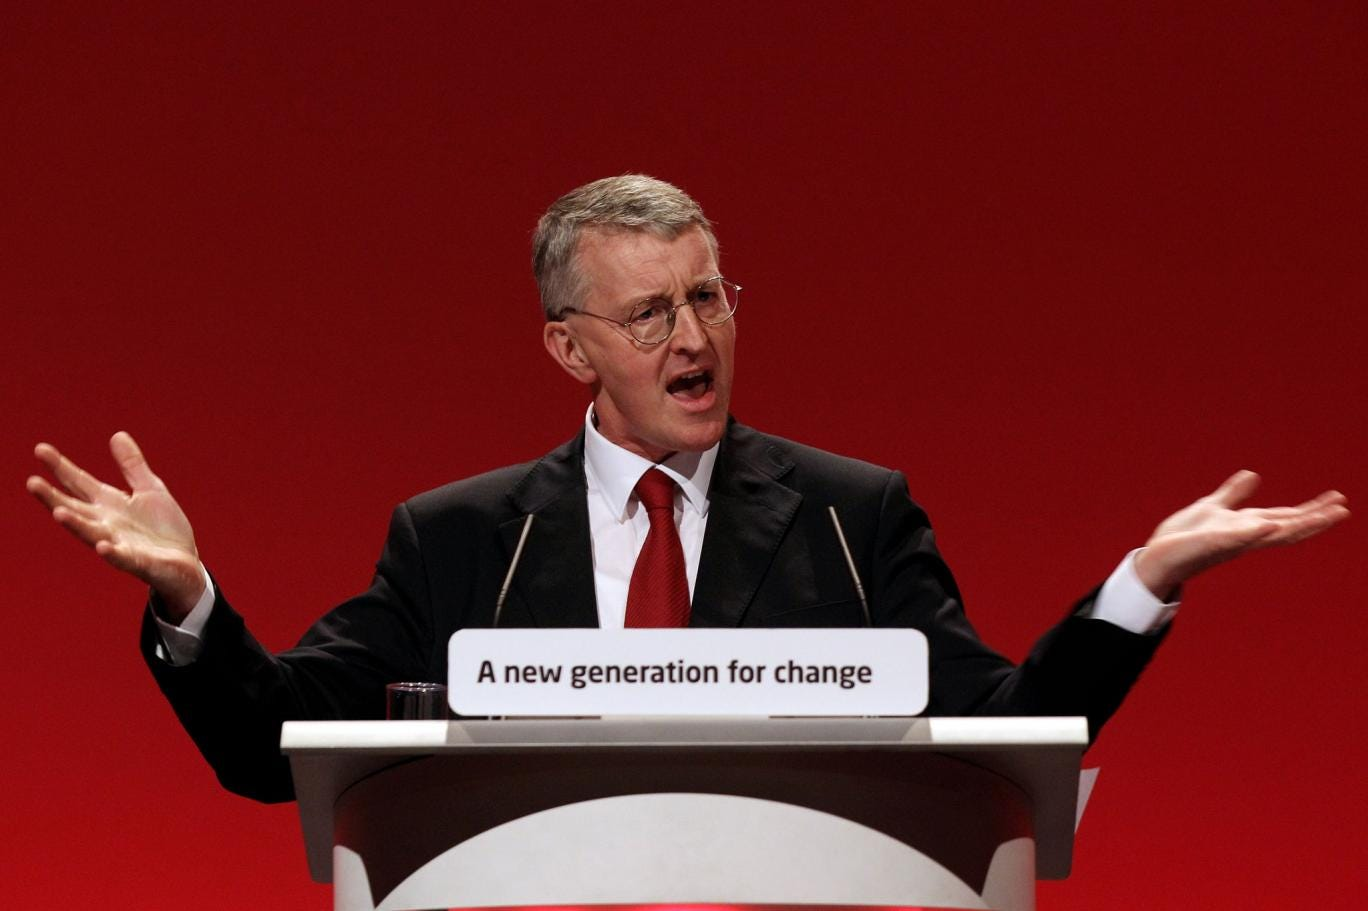 What's in a name: Labour MP Hilary Benn